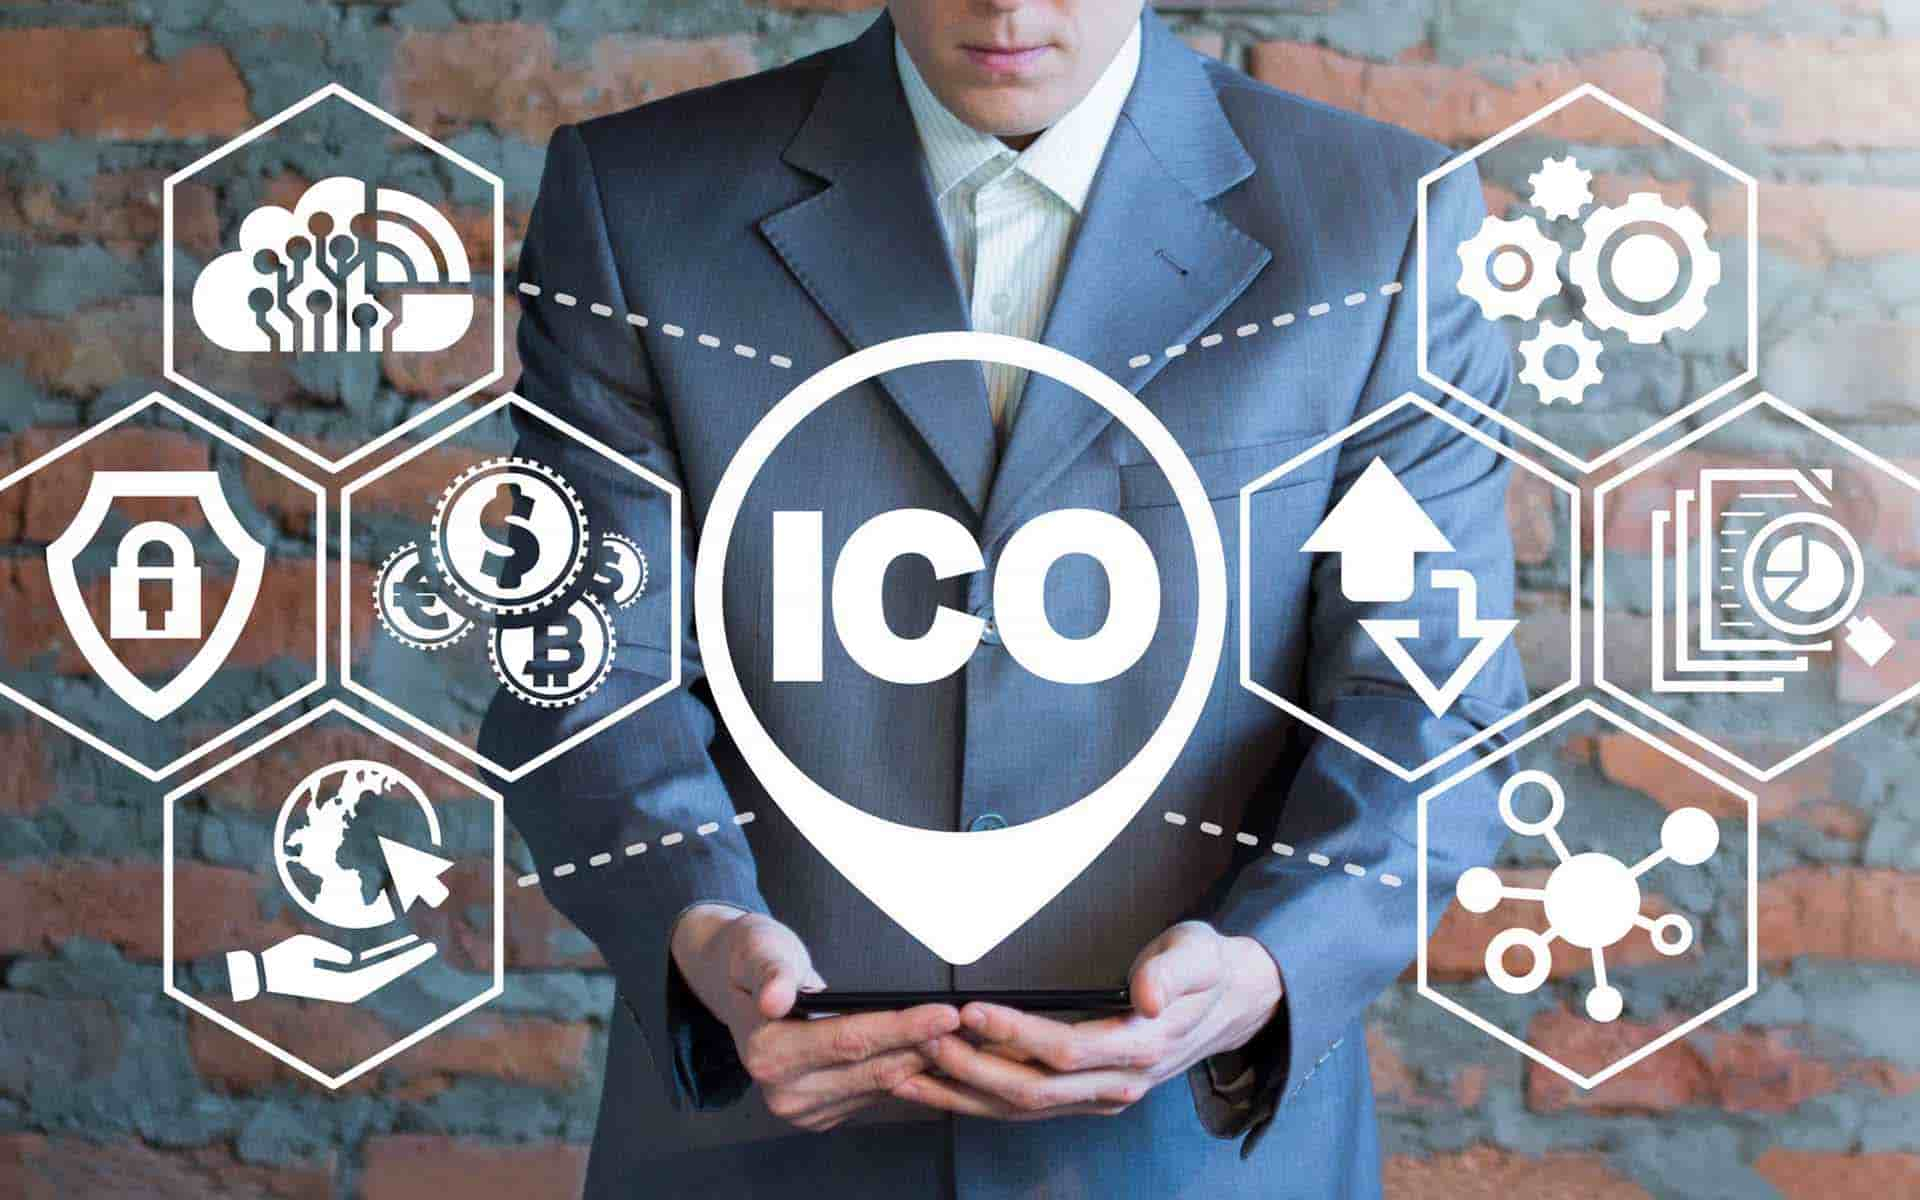 Lithuania Gave Opinion Regarding ICO